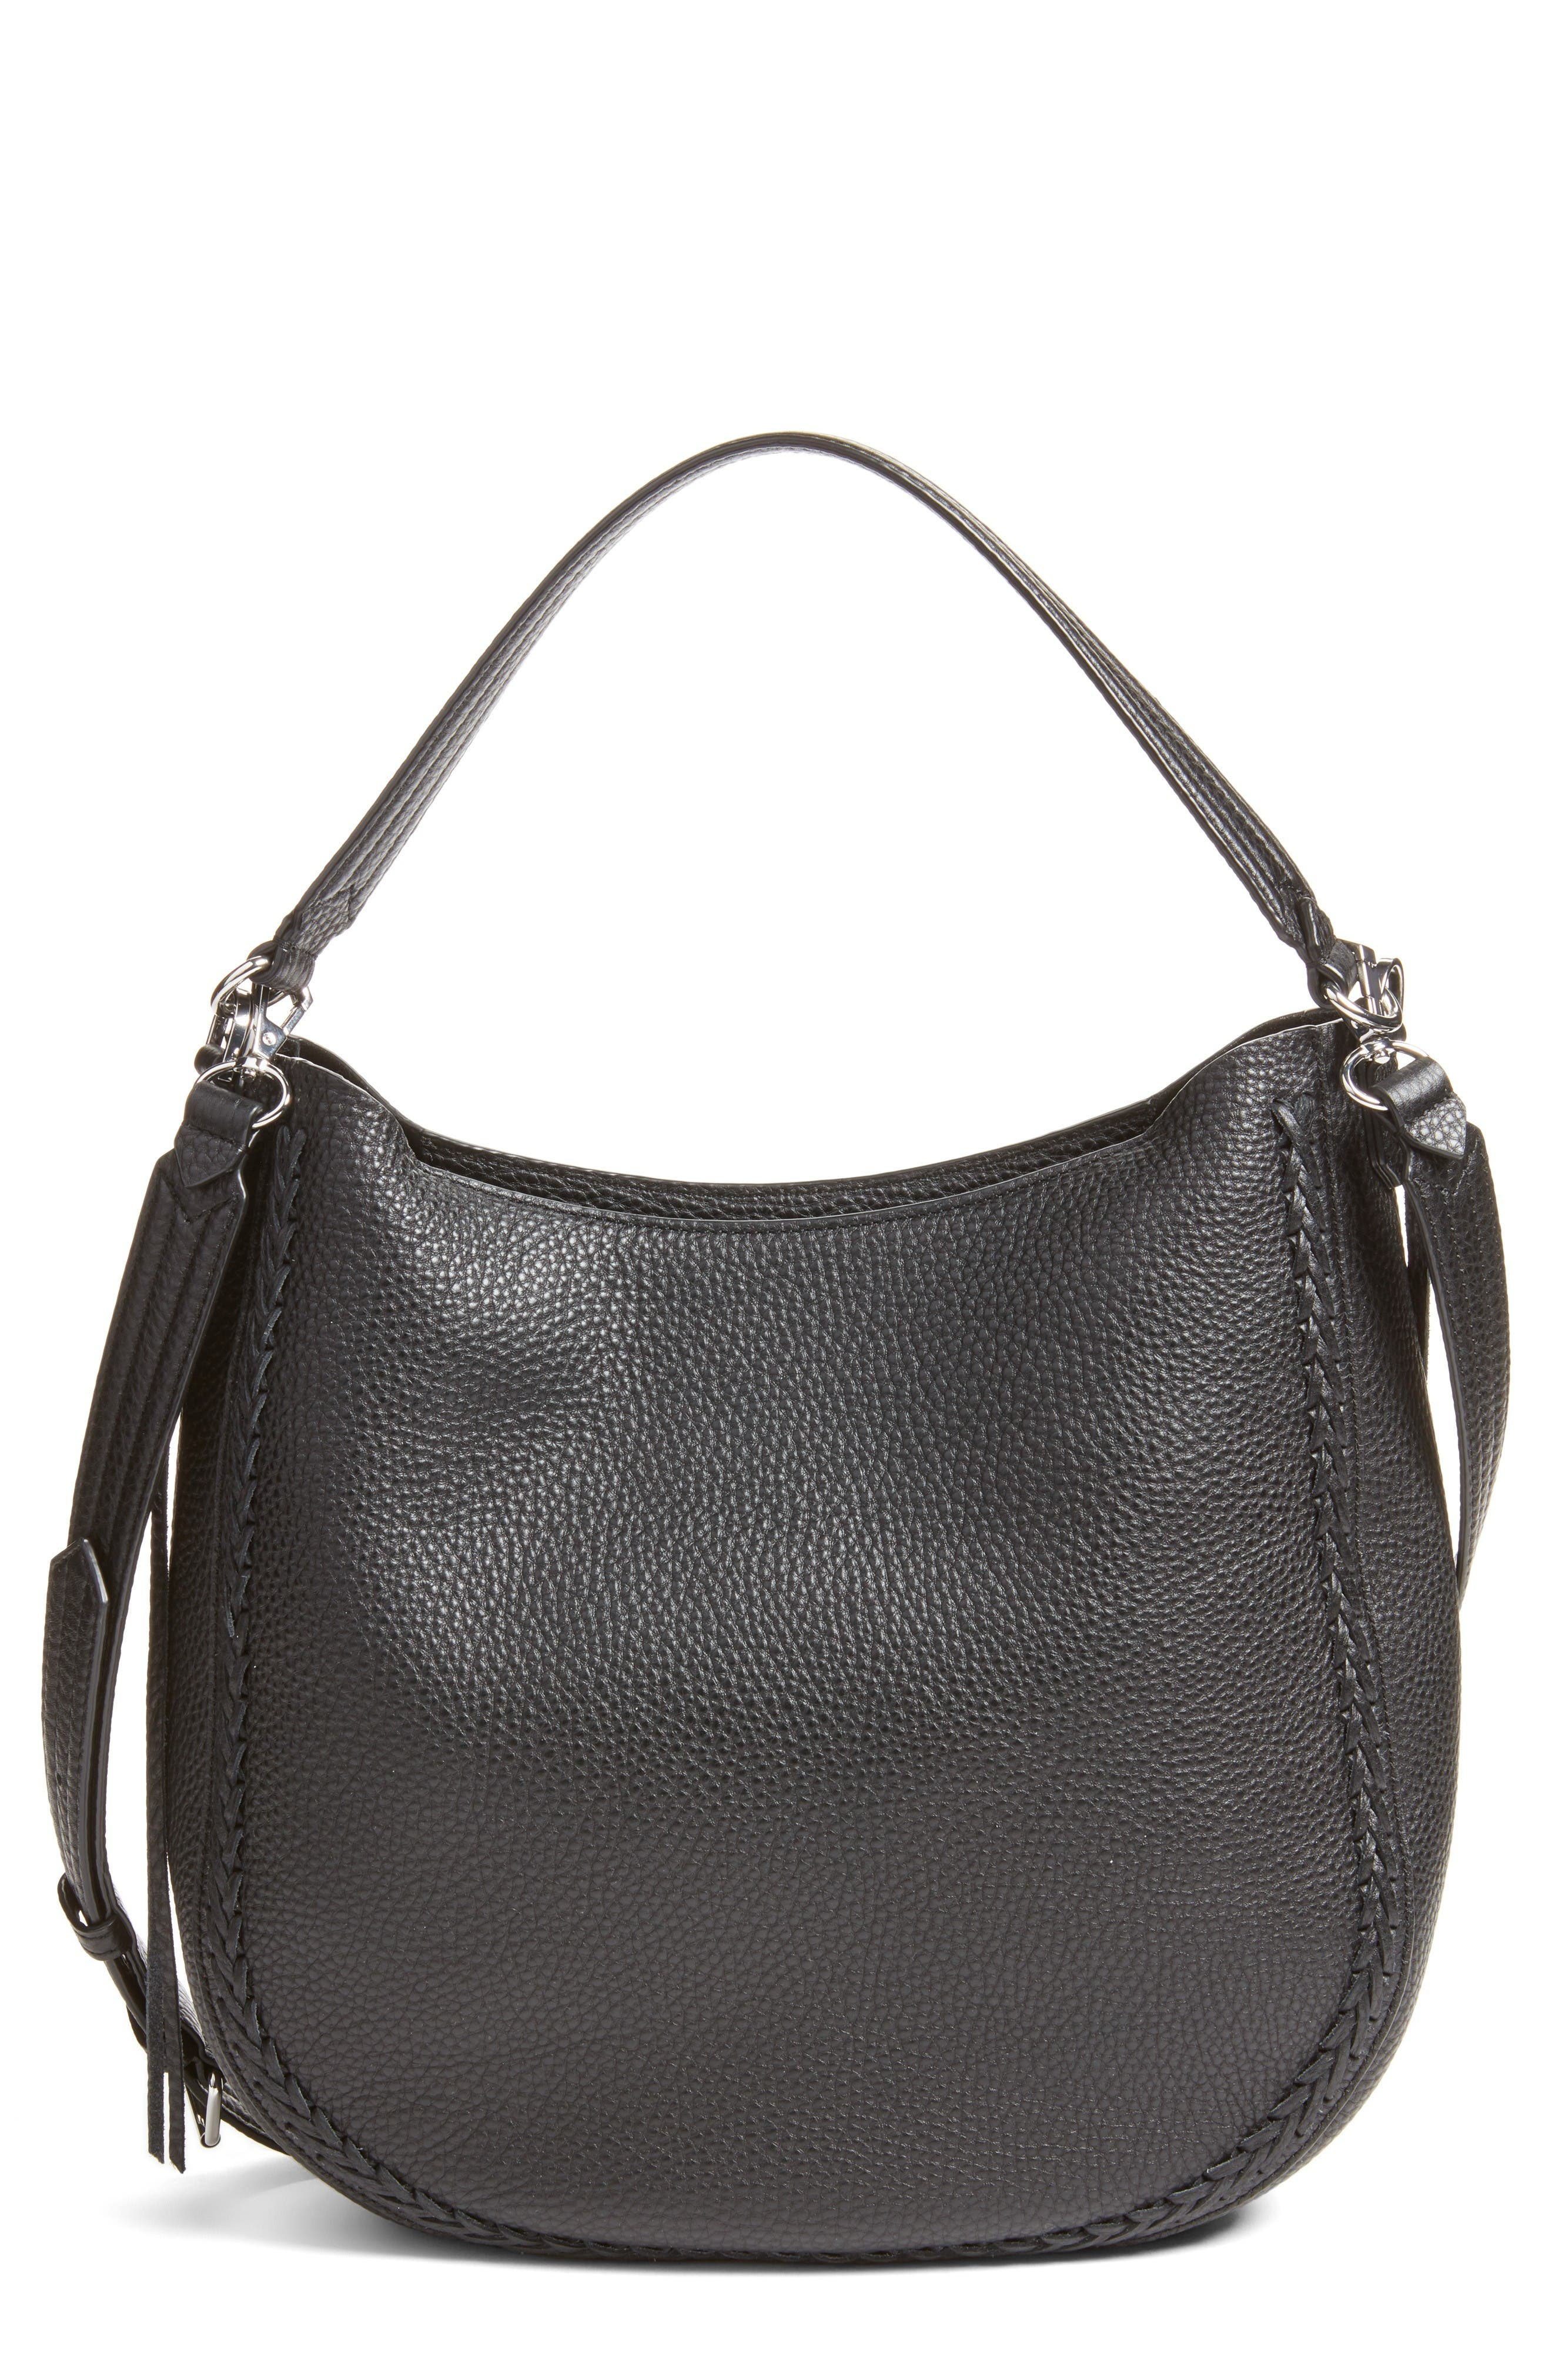 Alternate Image 1 Selected - Rebecca Minkoff Unlined Convertible Whipstitch Hobo (Nordstrom Exclusive)